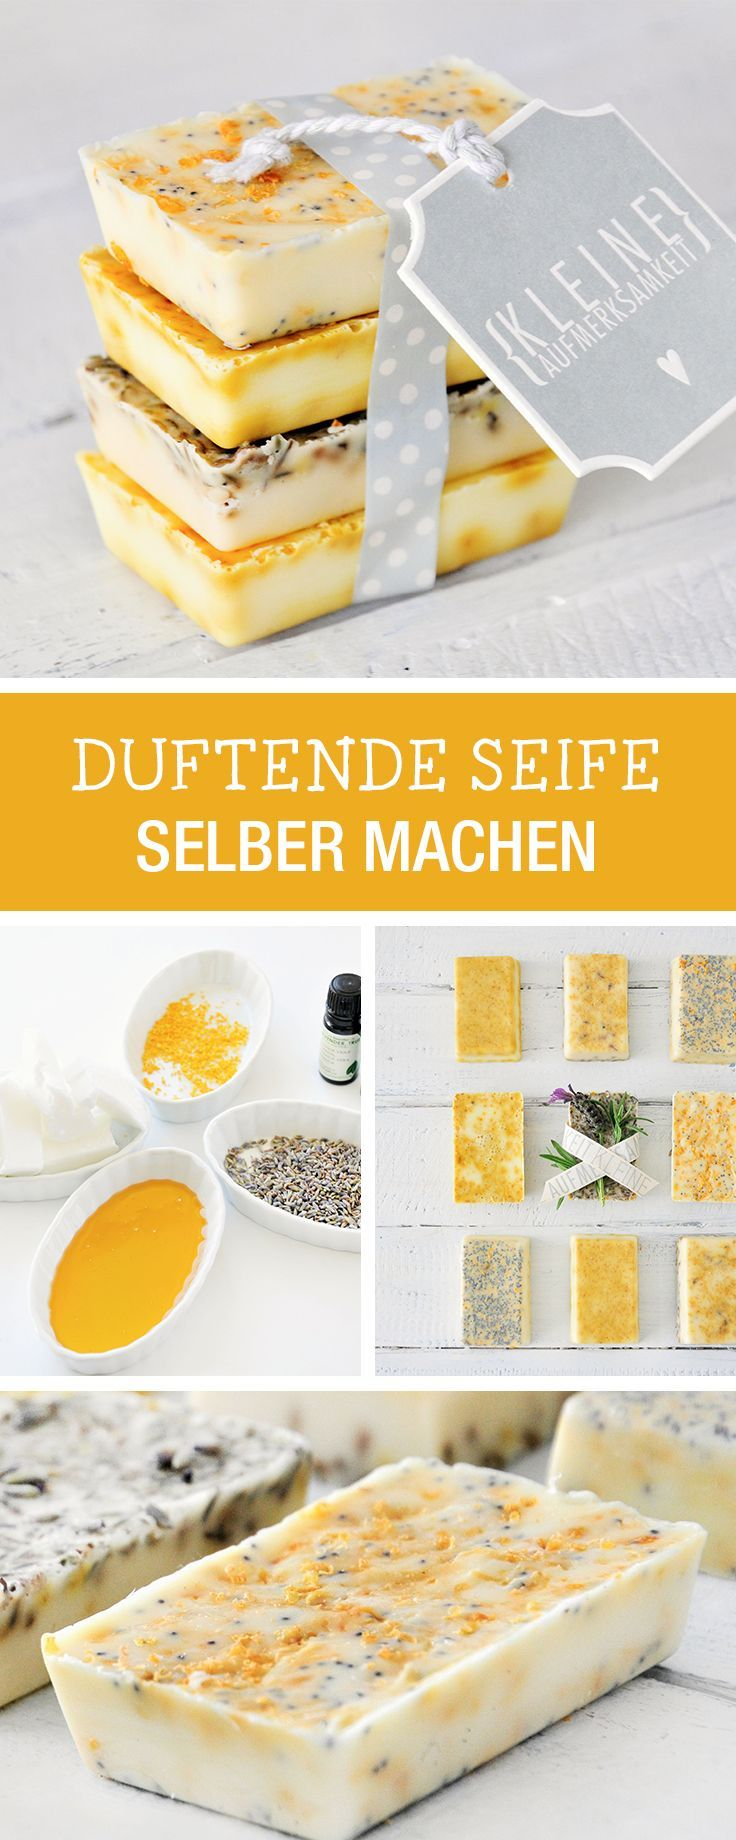 DIY-Anleitung: Duftende Seife herstellen, kleines Geschenk aus Zitrone, Lavendel und Grapefruit, zarte Haut / DIY tutorial: making fragranted soap, hand wash for soft skin via DaWanda.com #diysoap